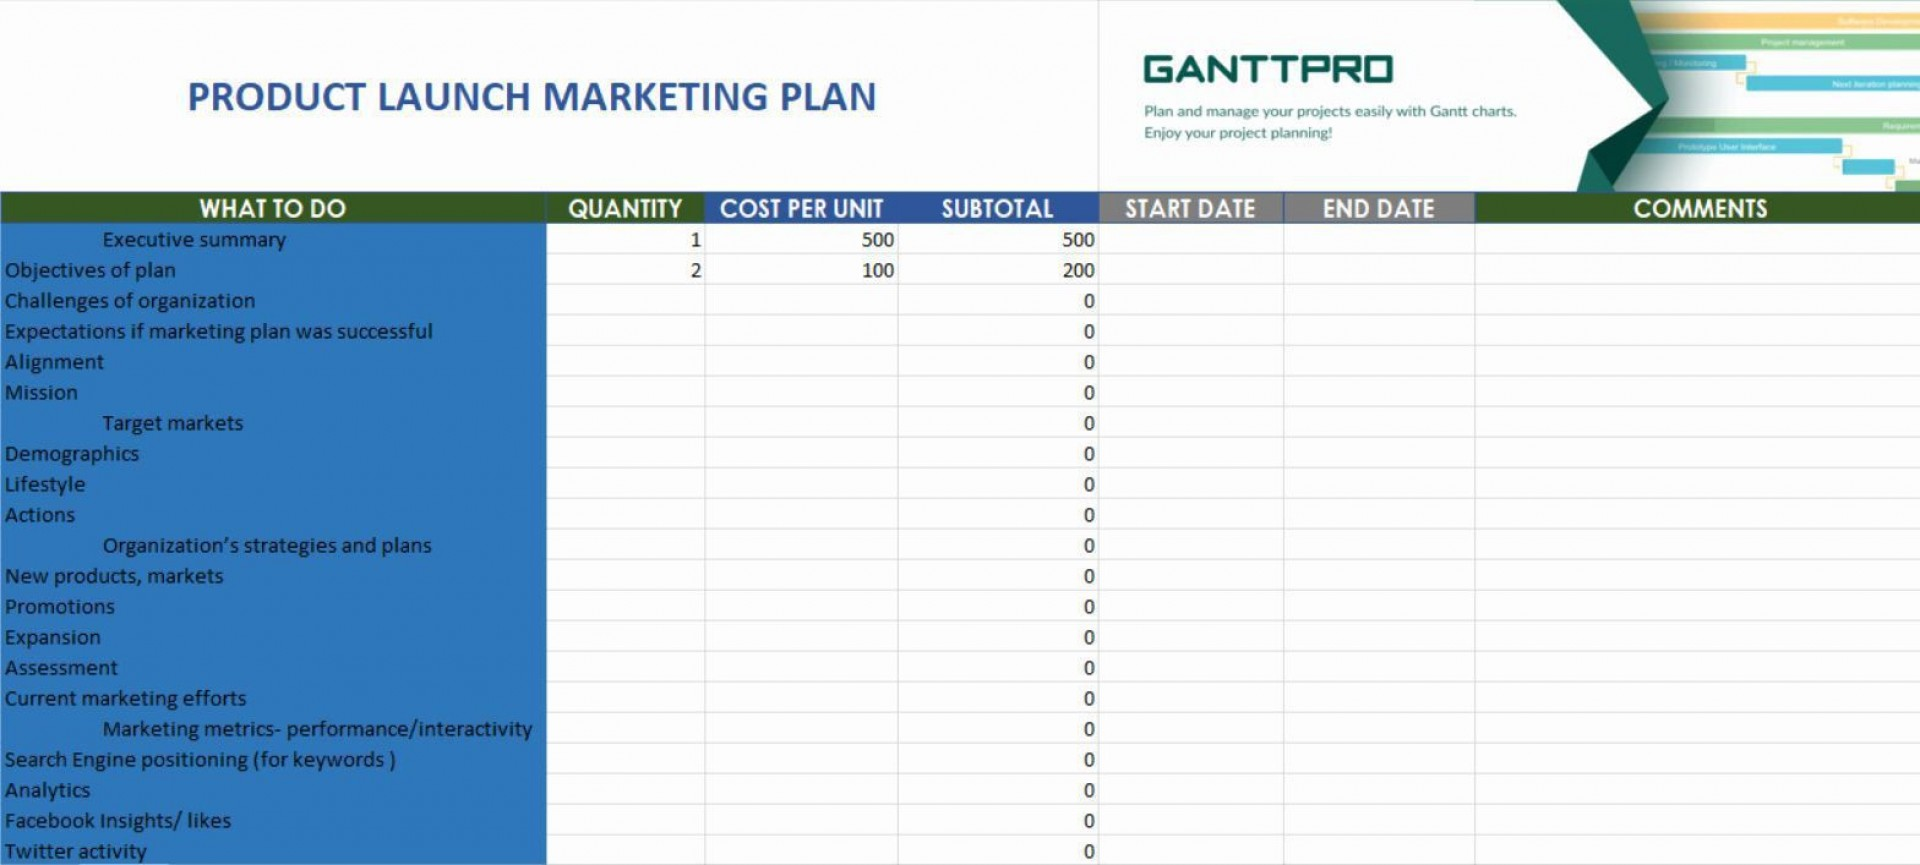 009 Unbelievable Product Launch Plan Template Picture  Google Sheet Ppt Free Powerpoint1920